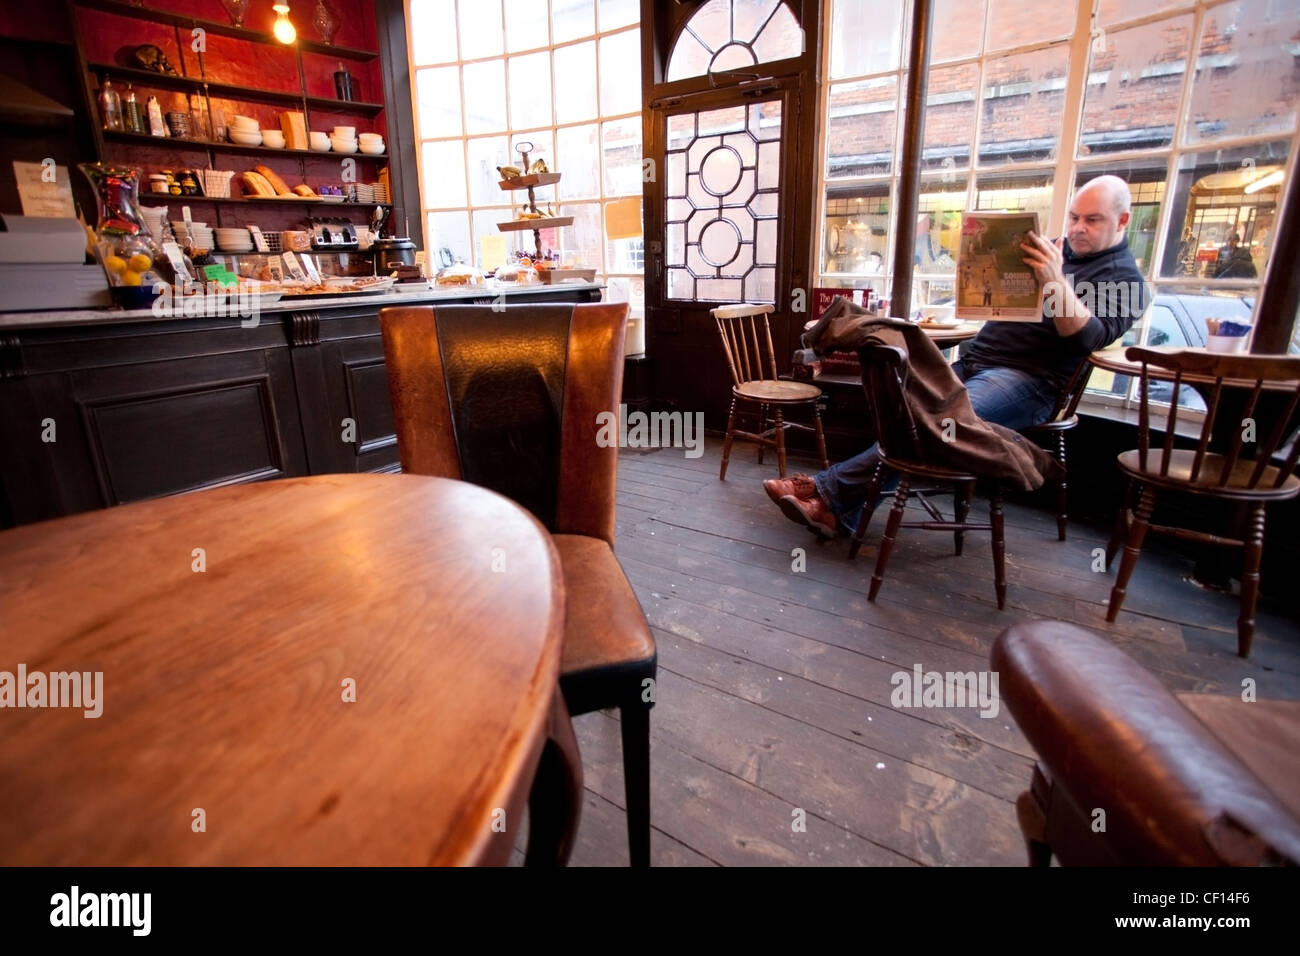 Apothecary Shop Interior Stock Photos Apothecary Shop